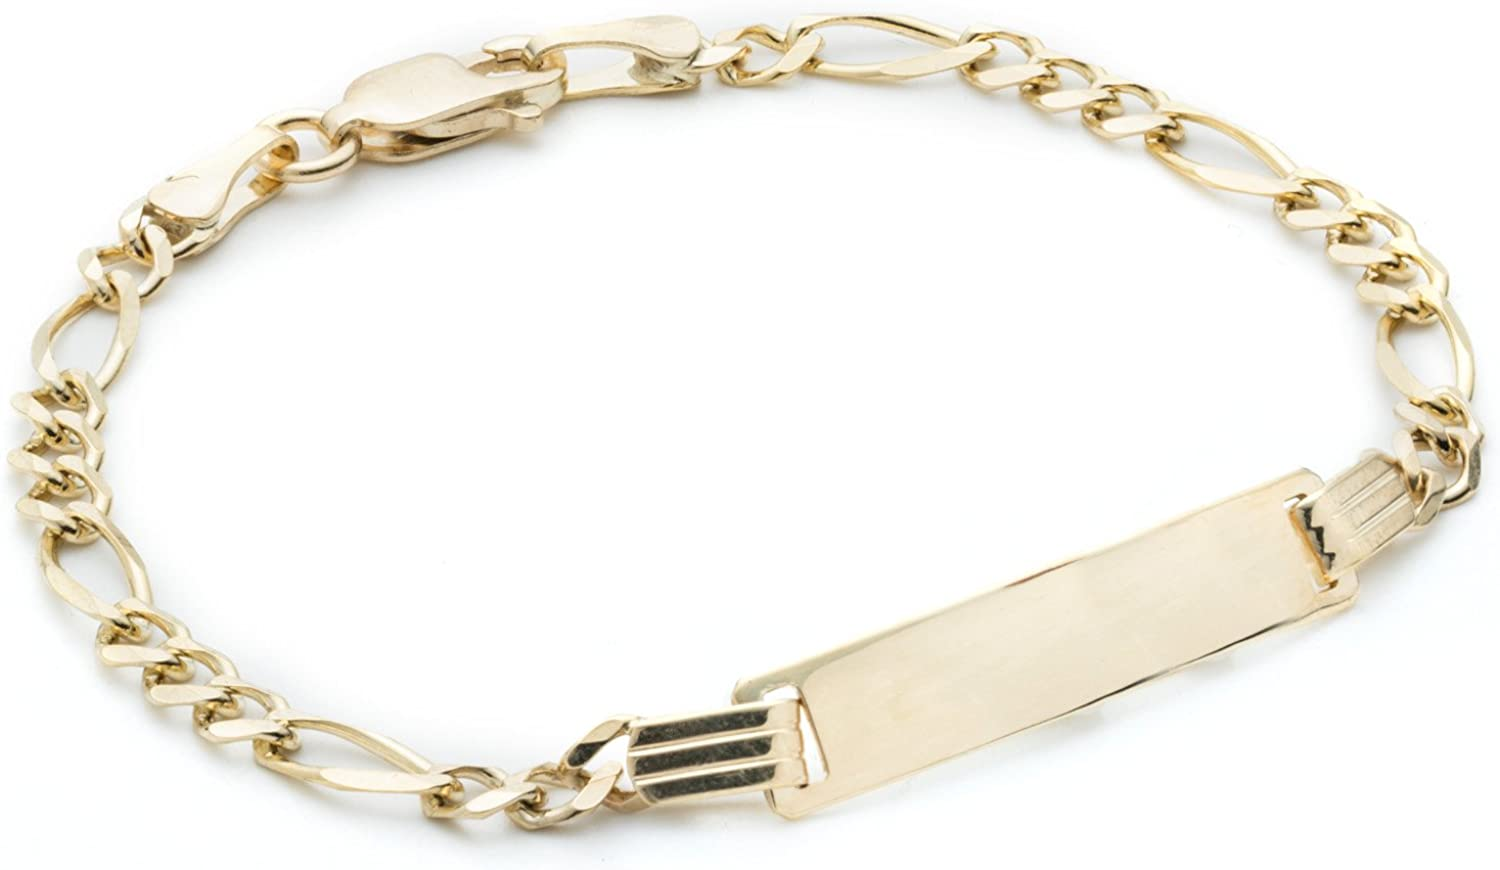 14K Yellow Gold Baby Children/'s Engravable ID Curb Link Bracelet 6 inches Engraved Personalized Names Initials